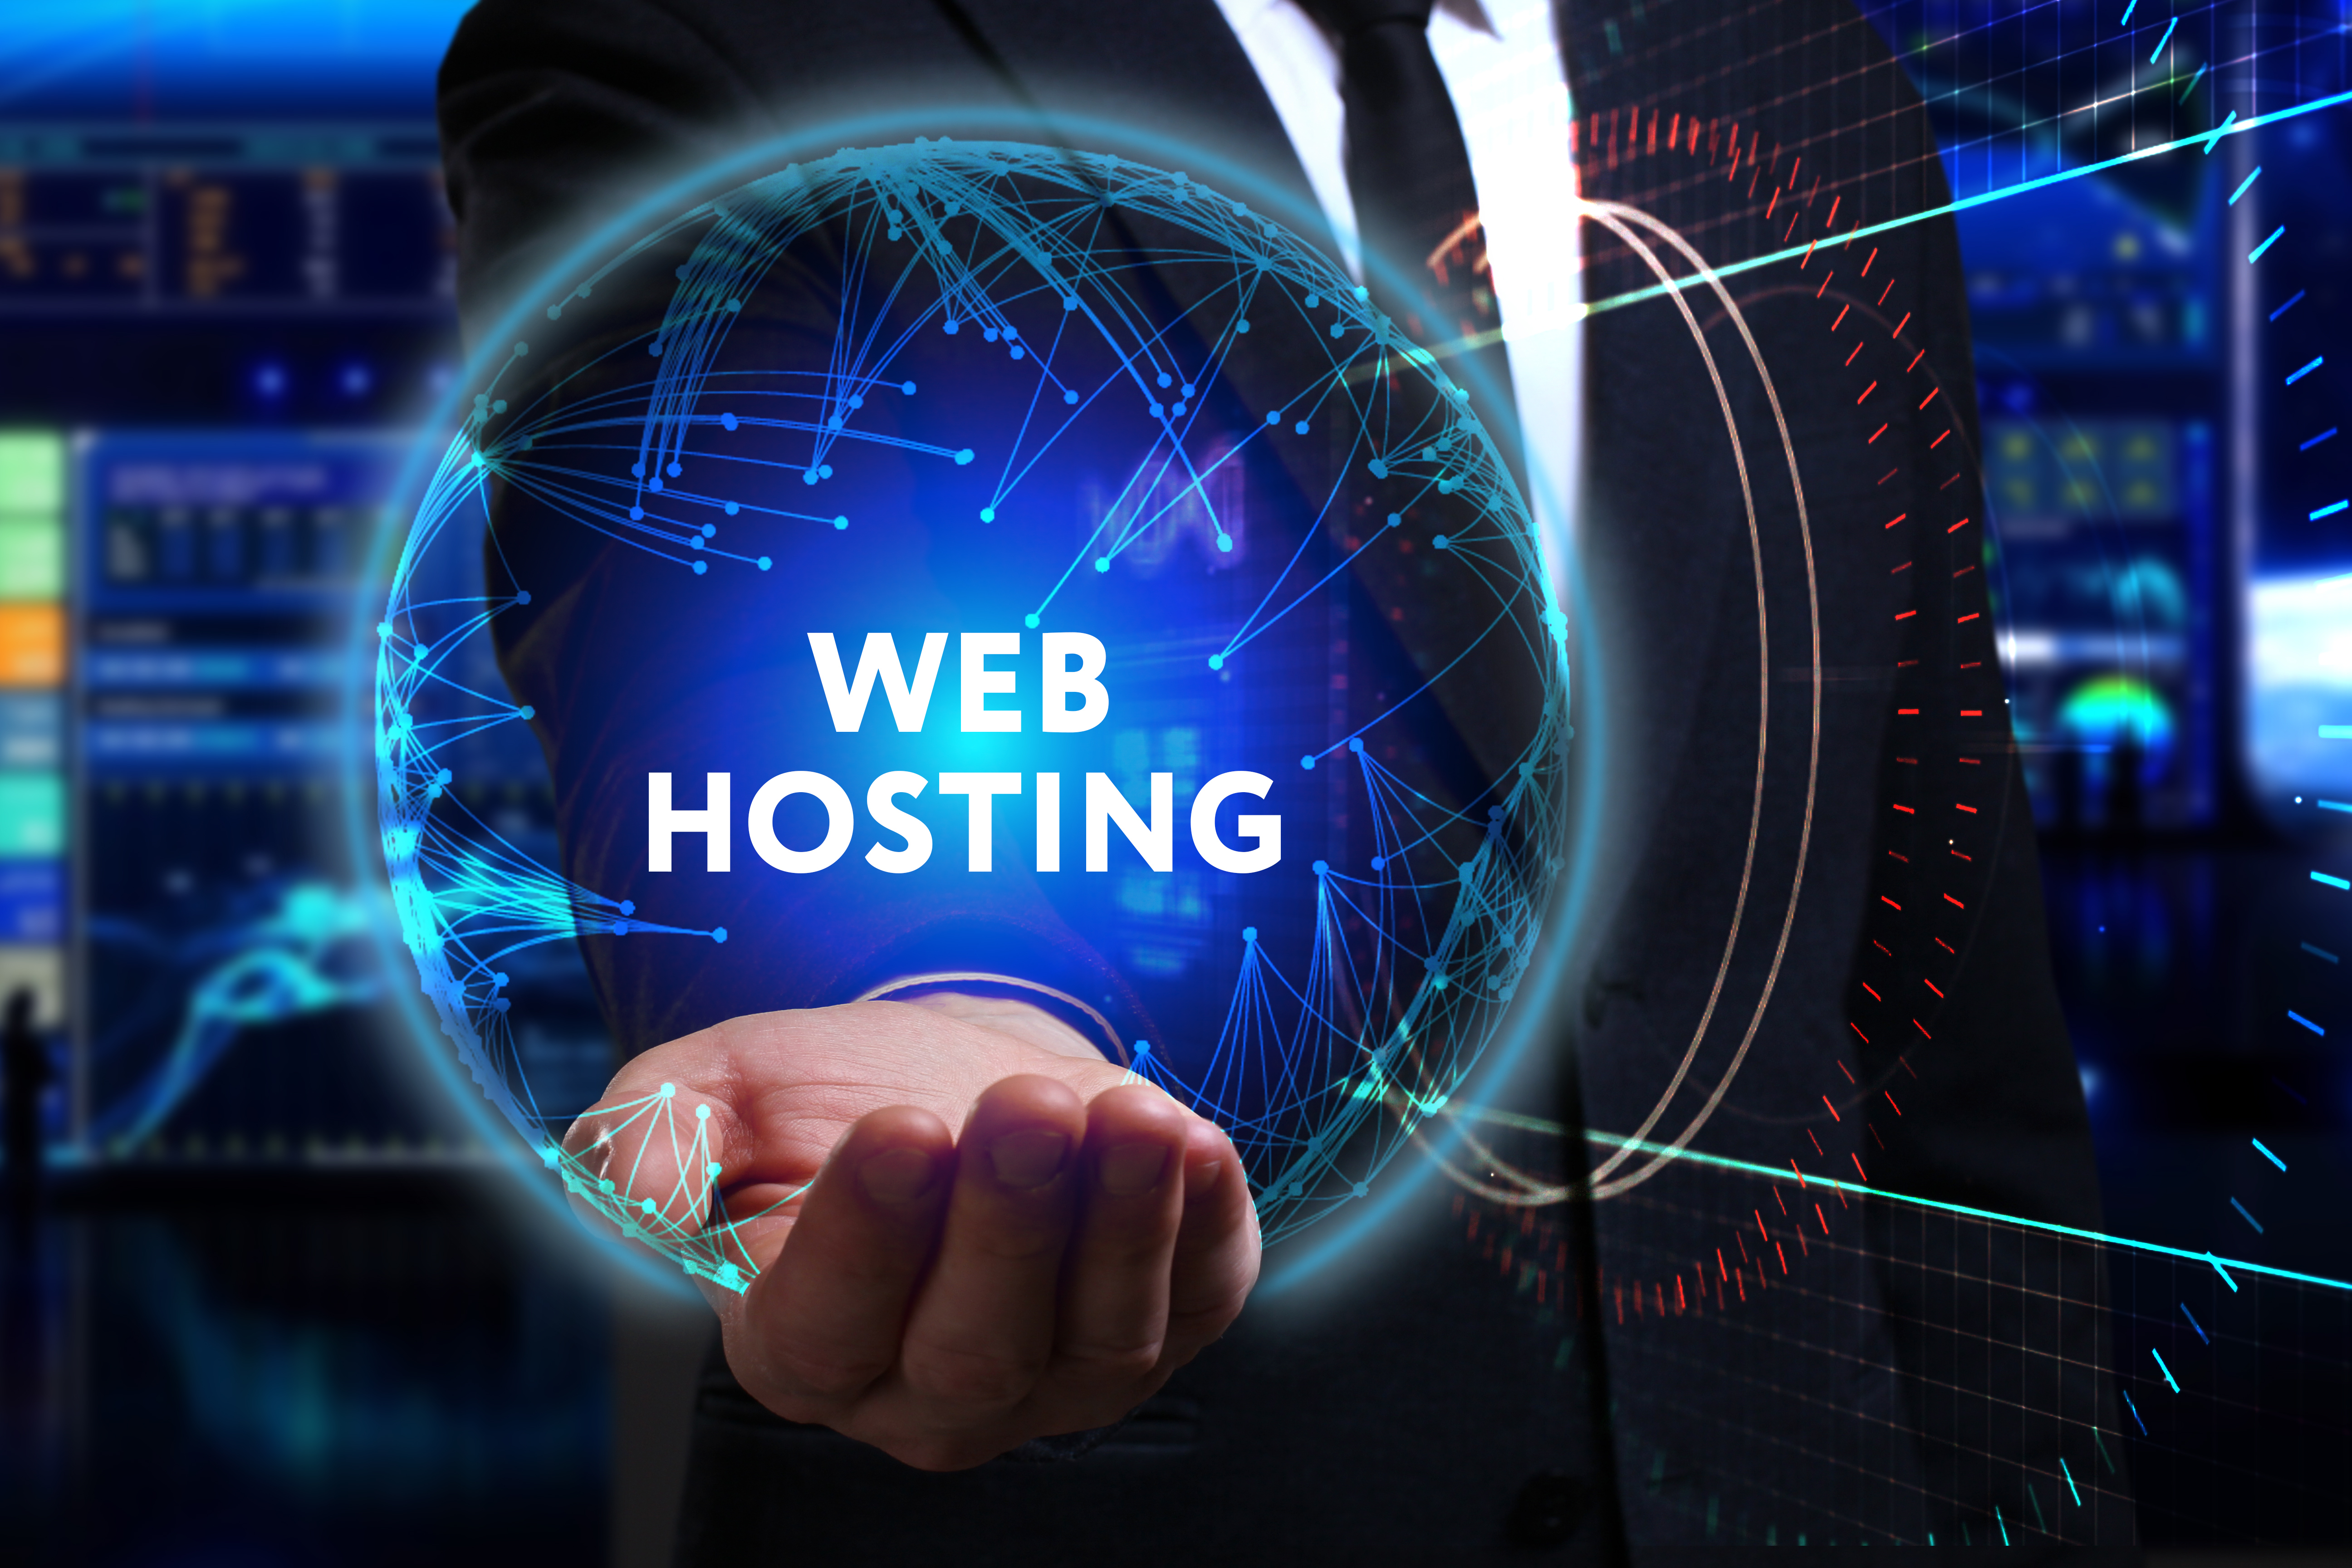 5 Tips to Select the Ideal Web Hosting Partner